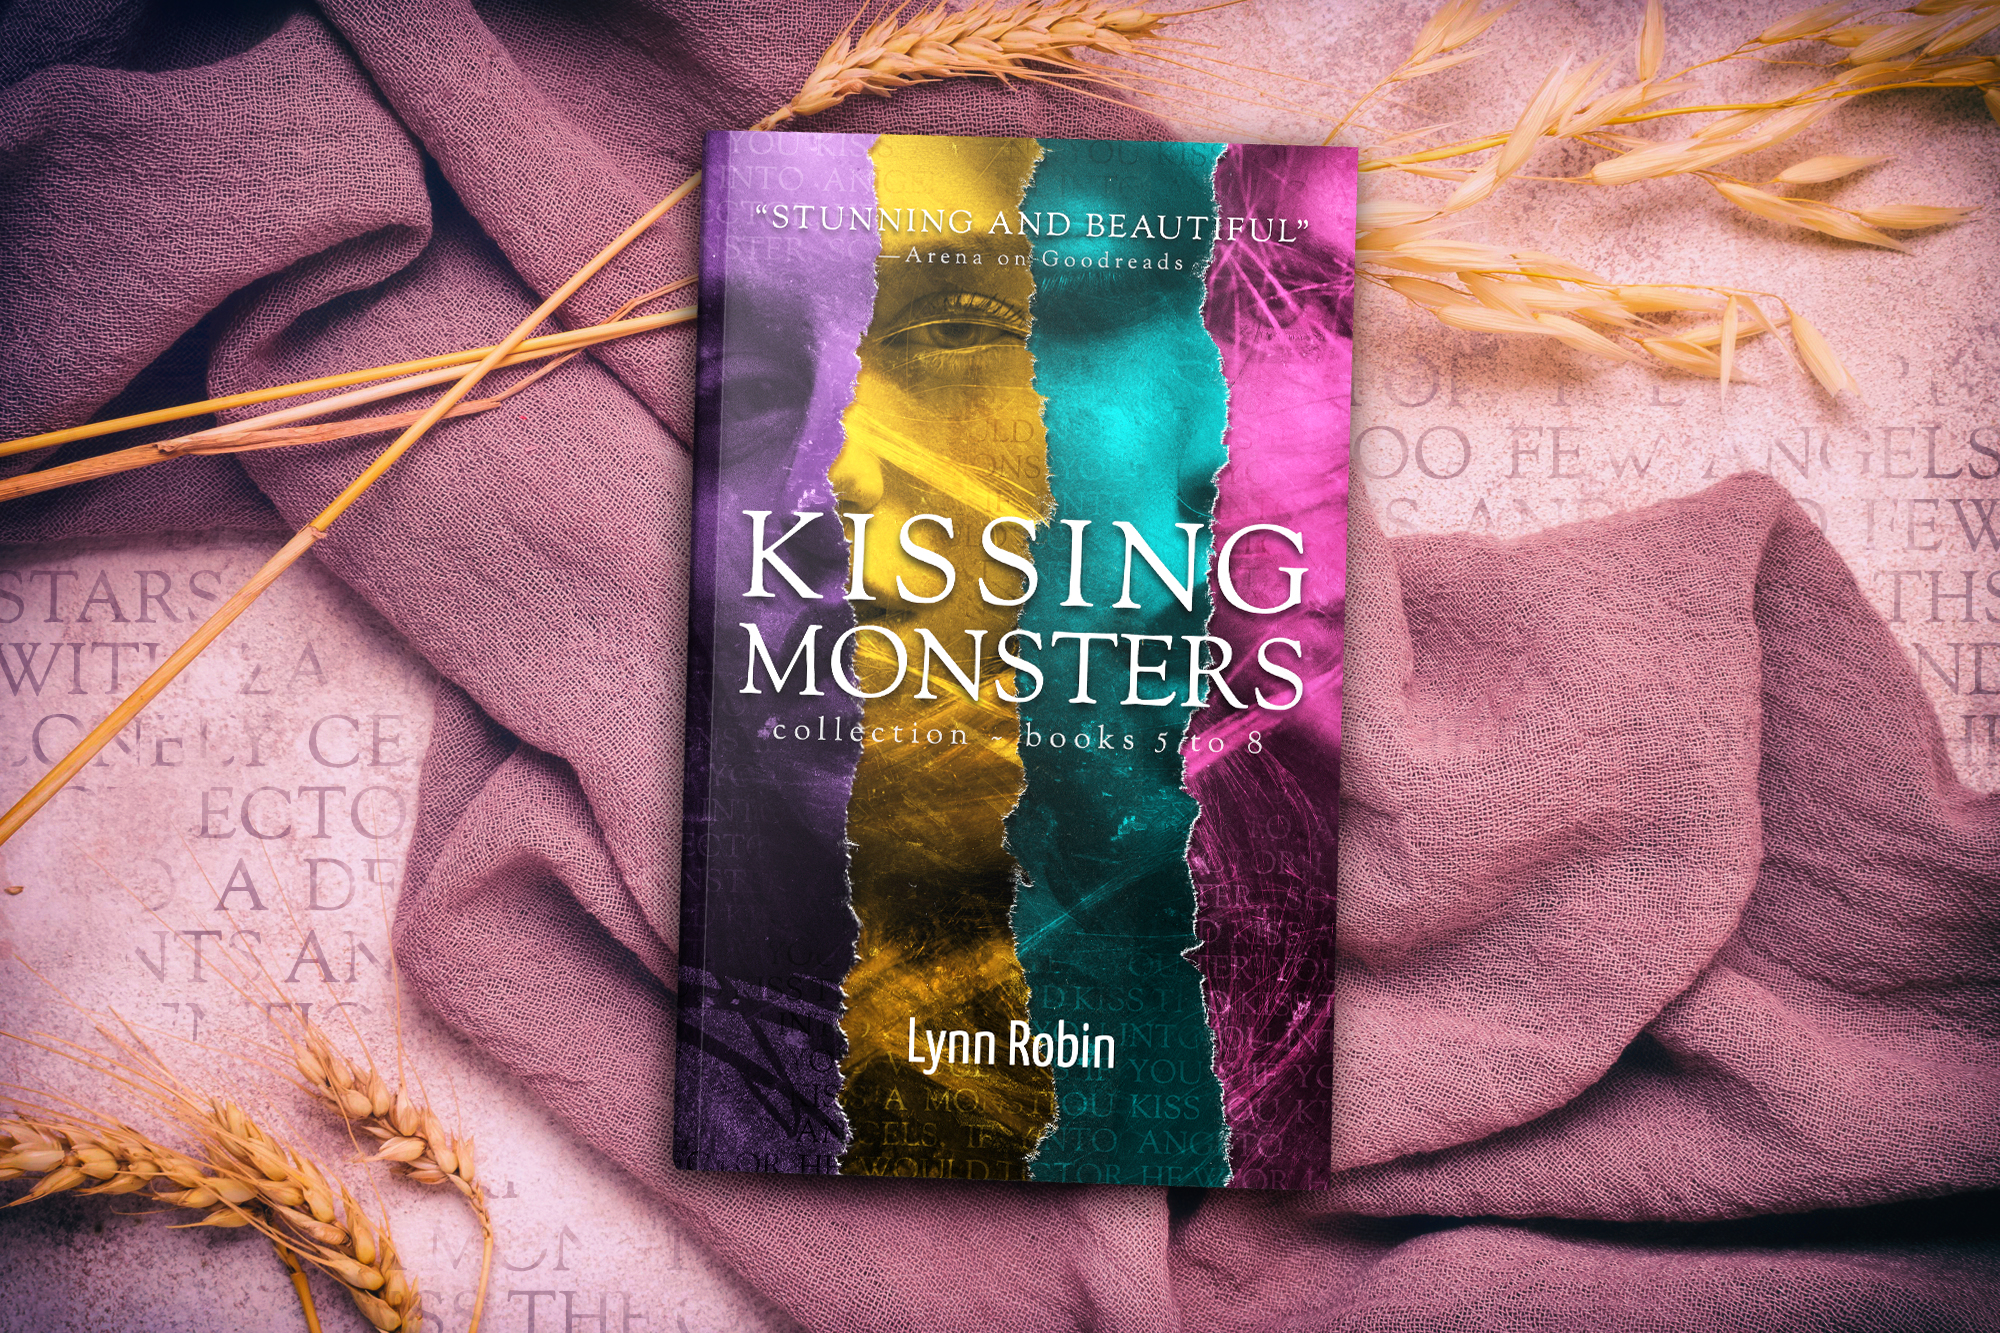 NEW RELEASE | OUT NOW: Kissing Monsters Collection #2 (Kissing Monsters 5—8)